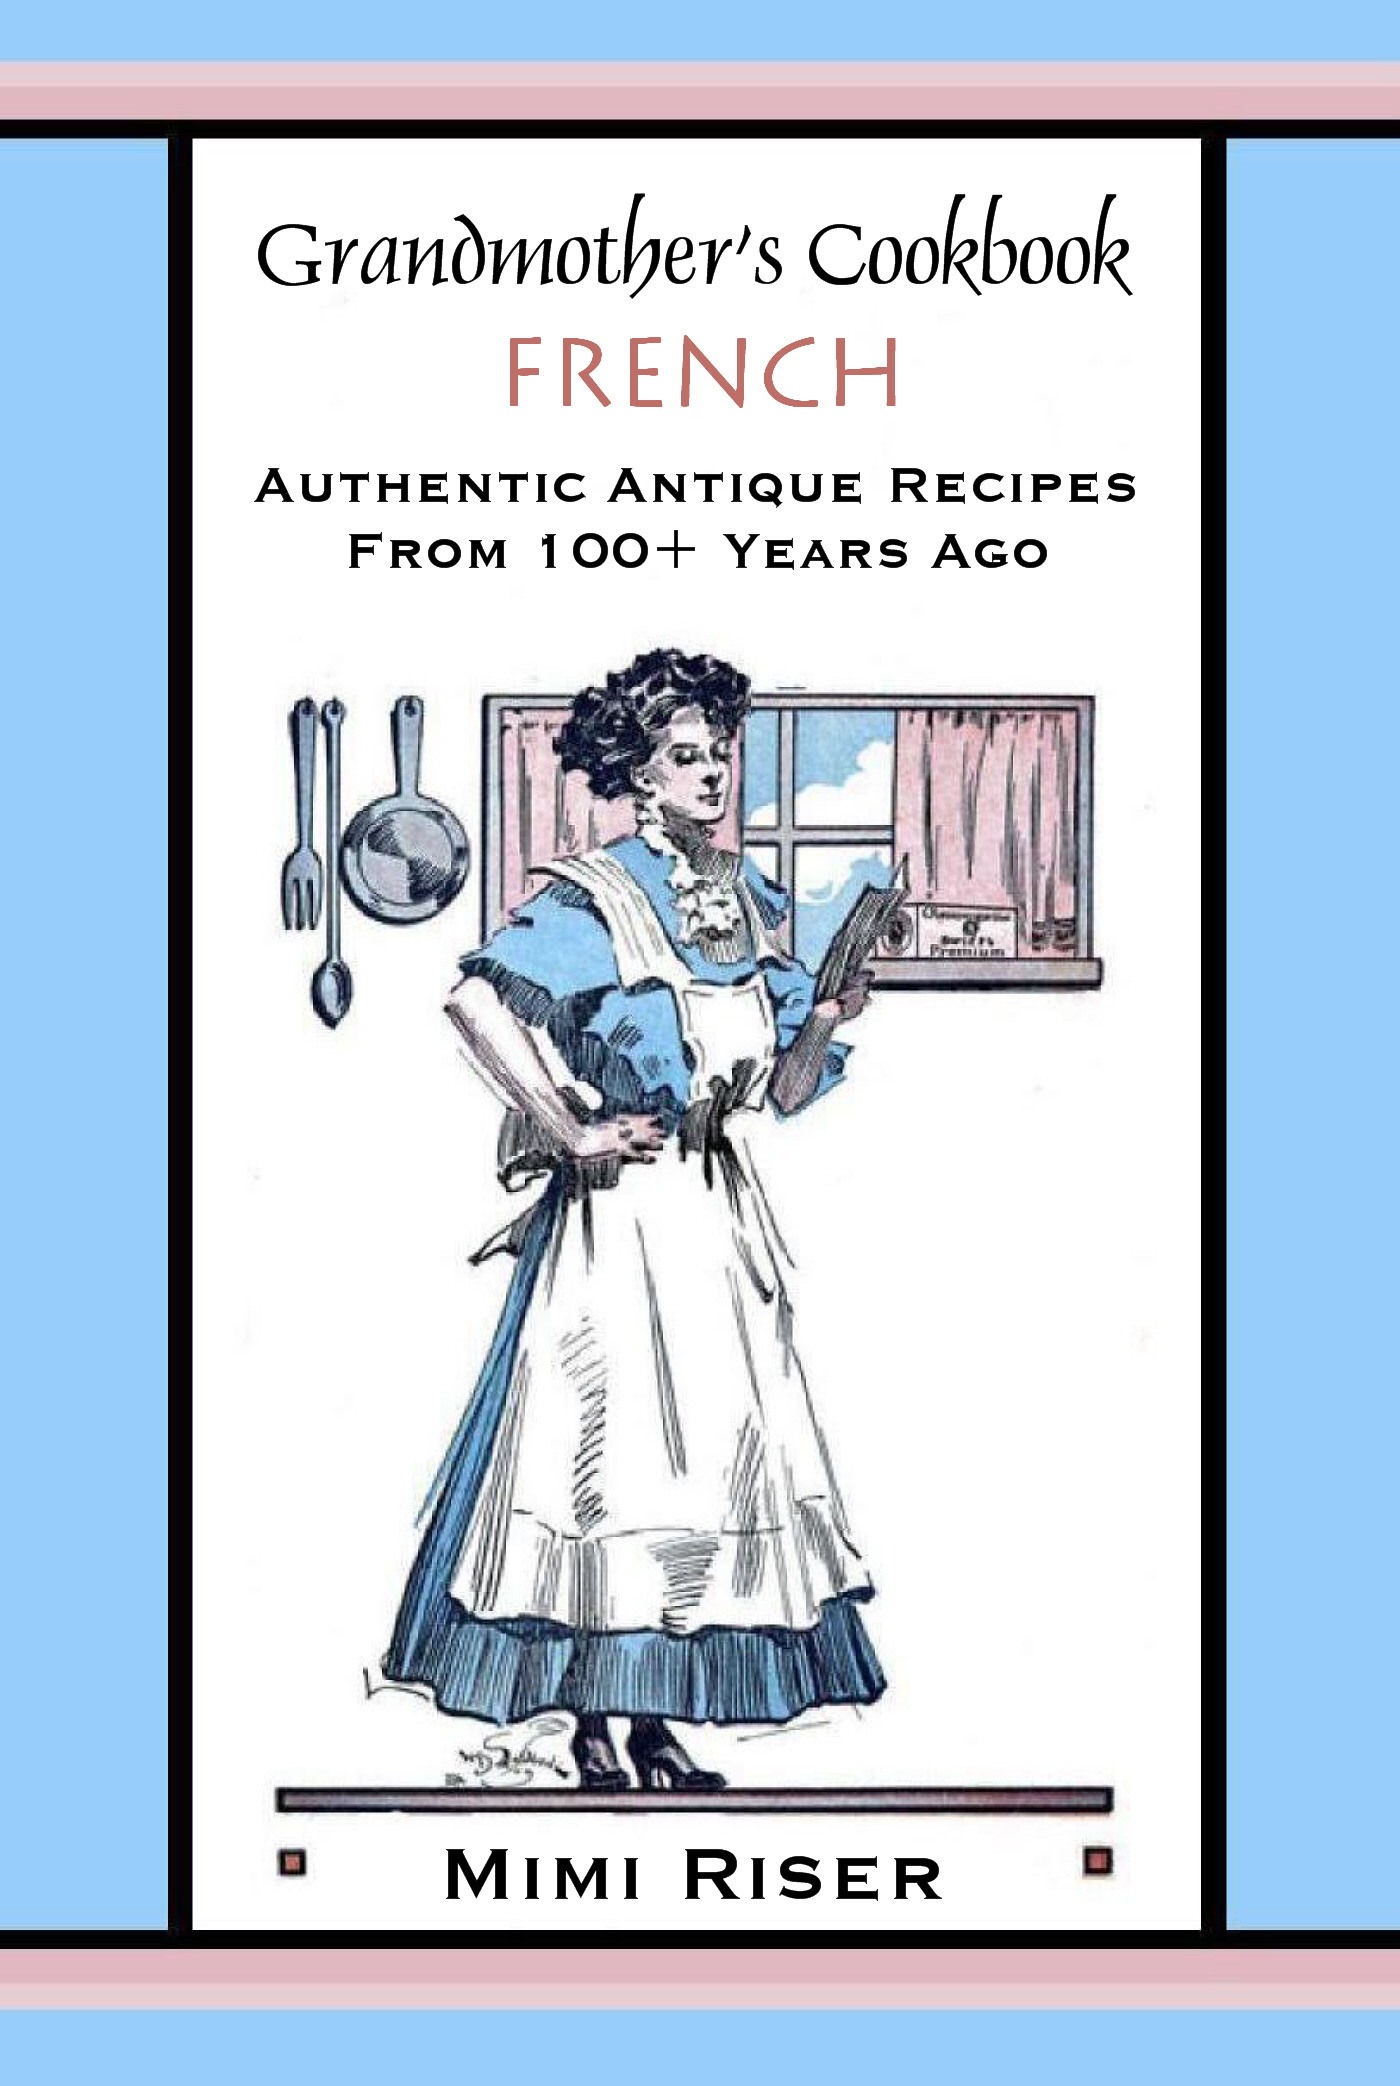 Grandmother's Cookbook, French, Authentic Antique Recipes from 100+ Years Ago  by  Mimi Riser